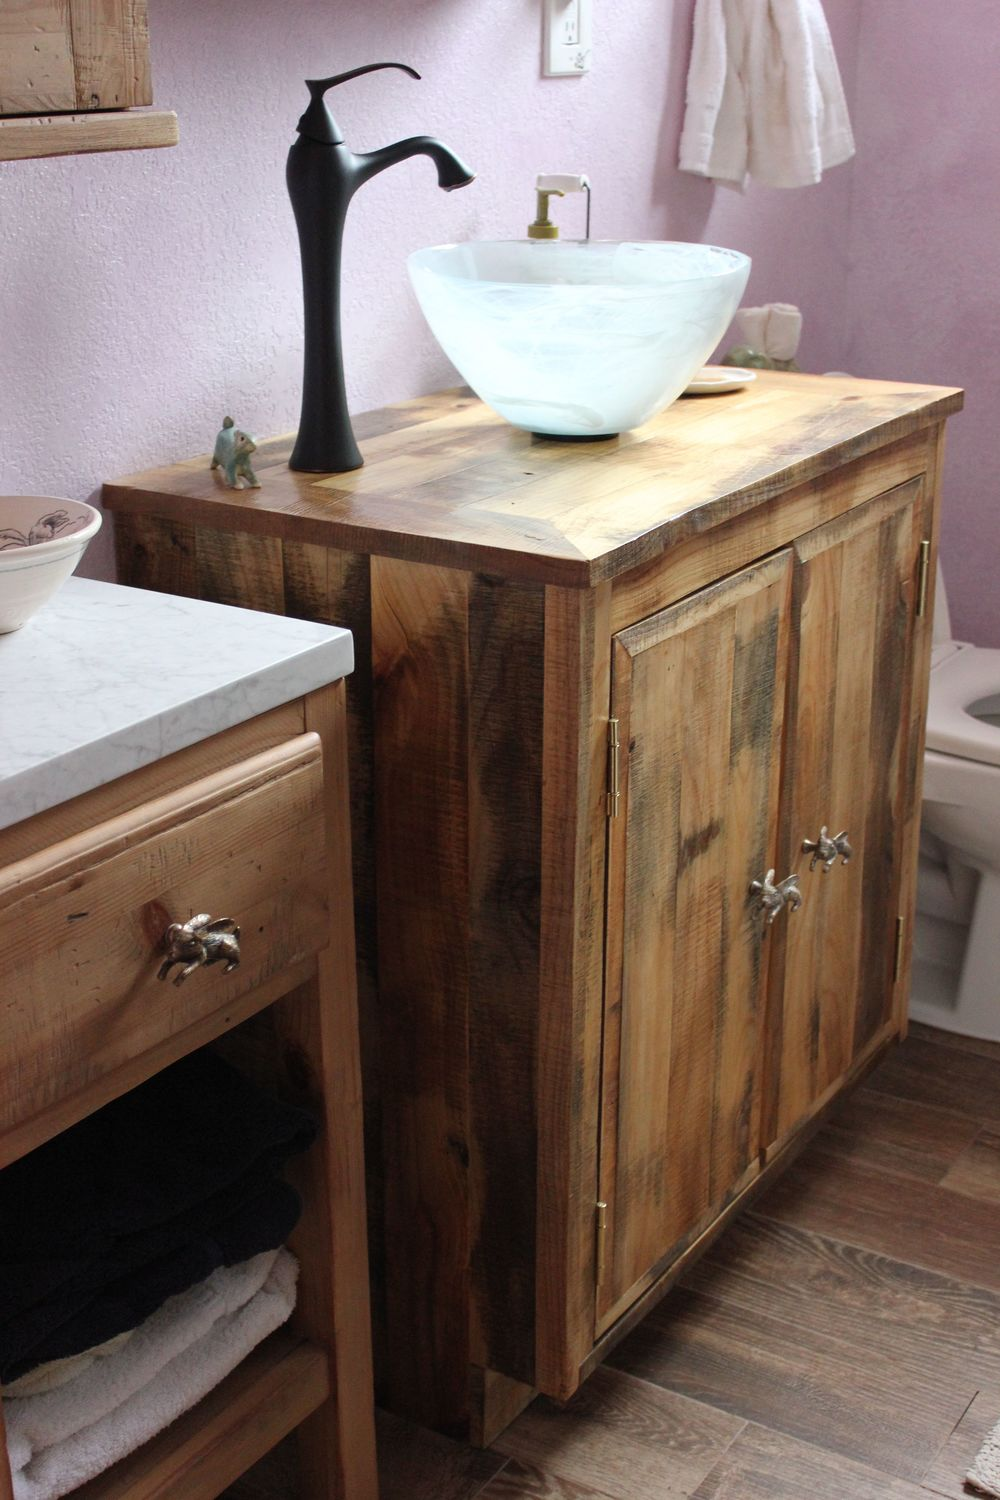 reclaimed bathroom vanity - Bathroom Vanity €� Reclaimed Wood - Los Angeles -Barnwood Hardwood